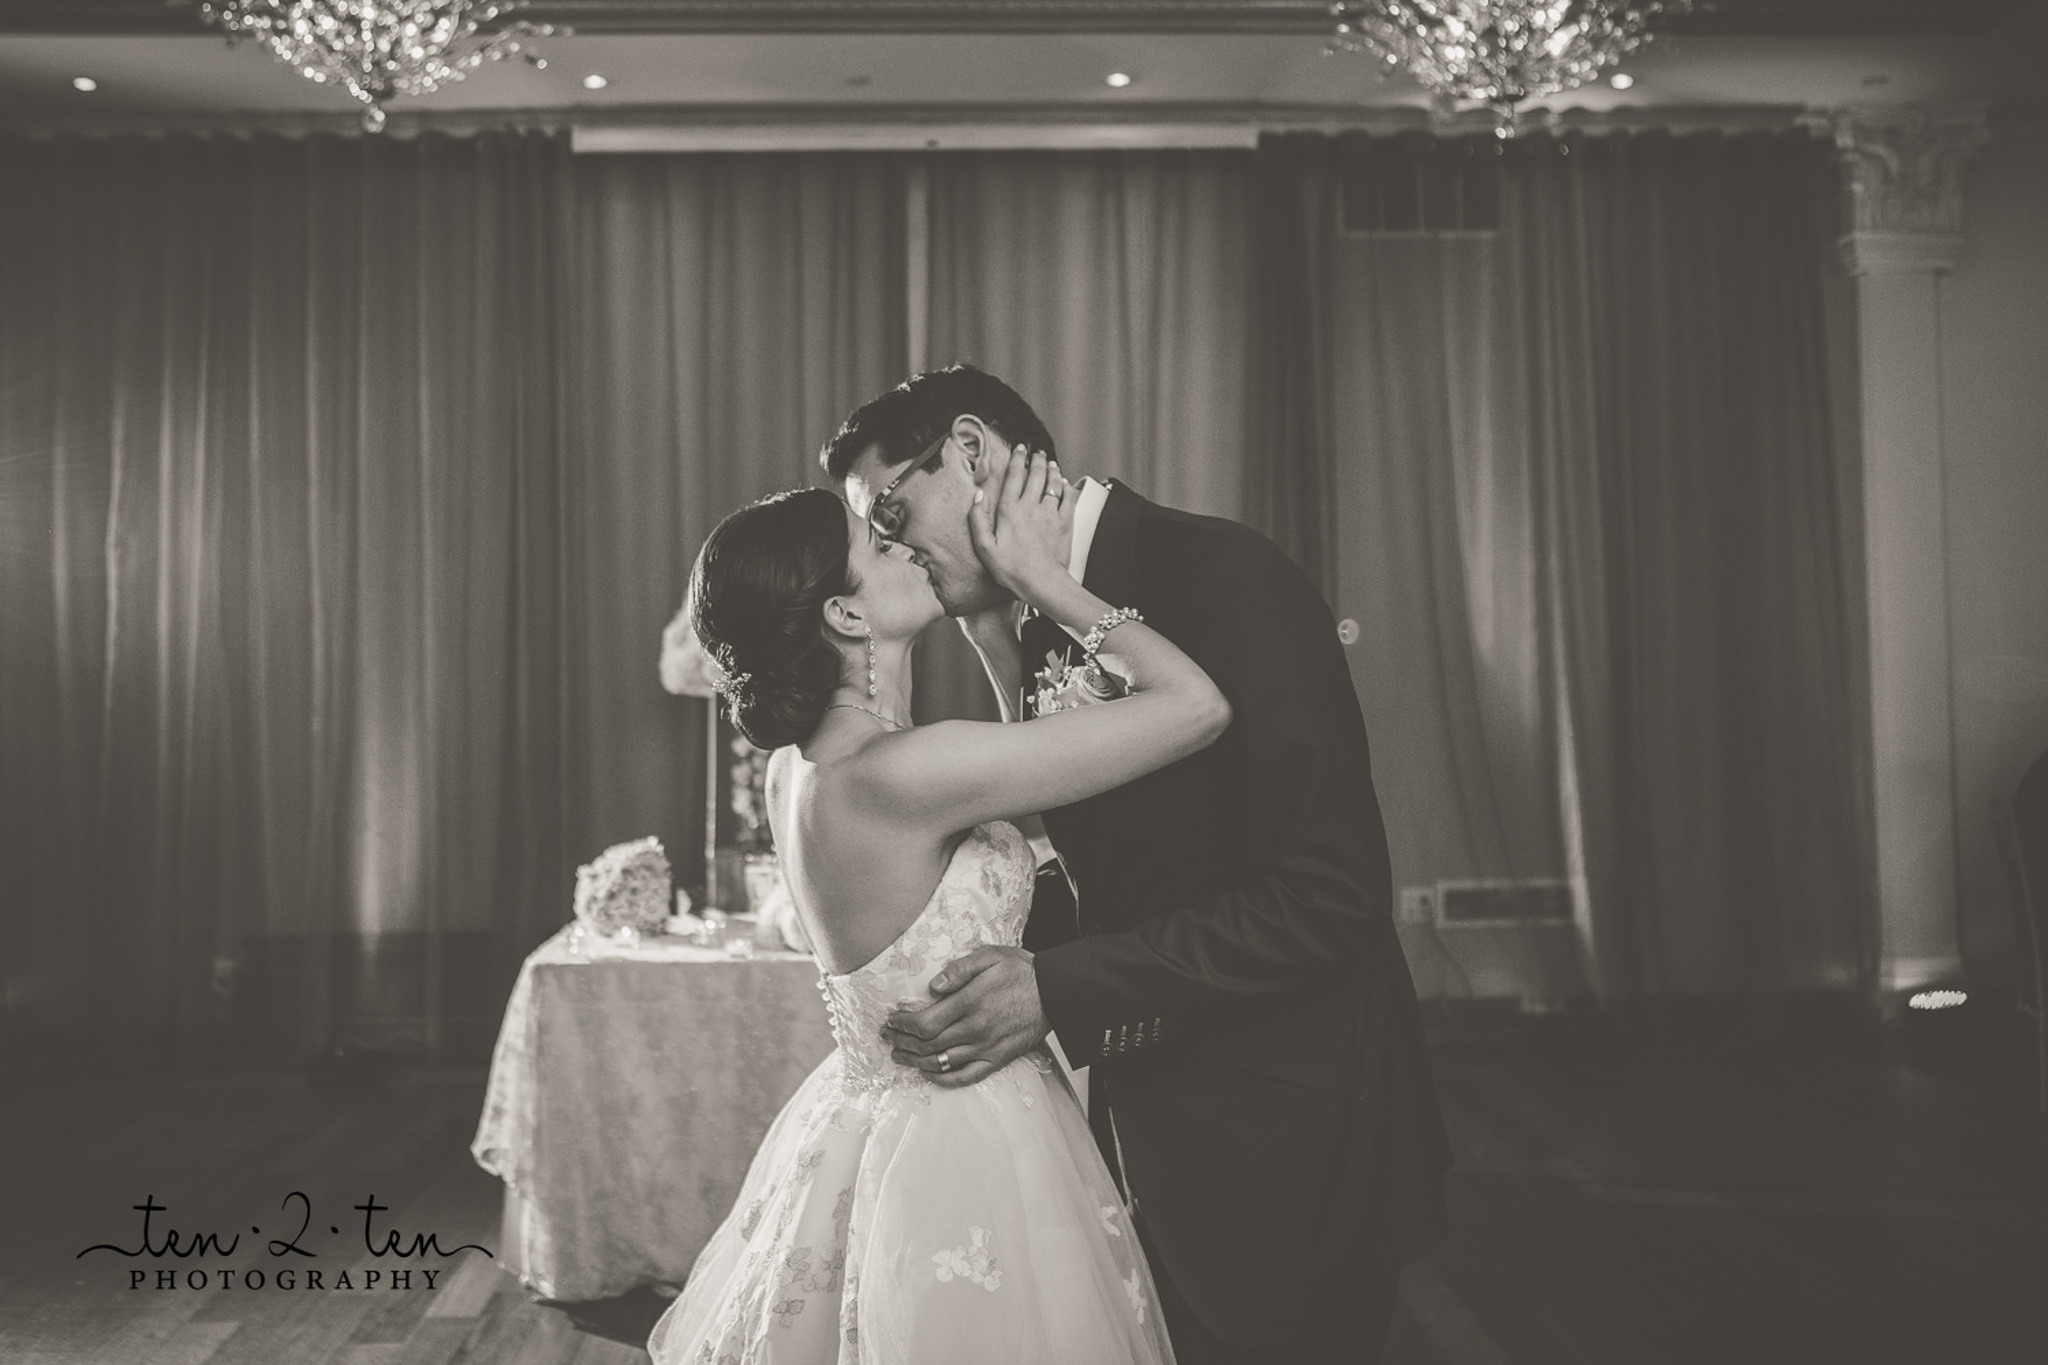 rosewater wedding photo, rosewater wedding photography, rosewater room wedding photos, rosewater room wedding, rosewater room wedding pictures, rosewater room wedding photography